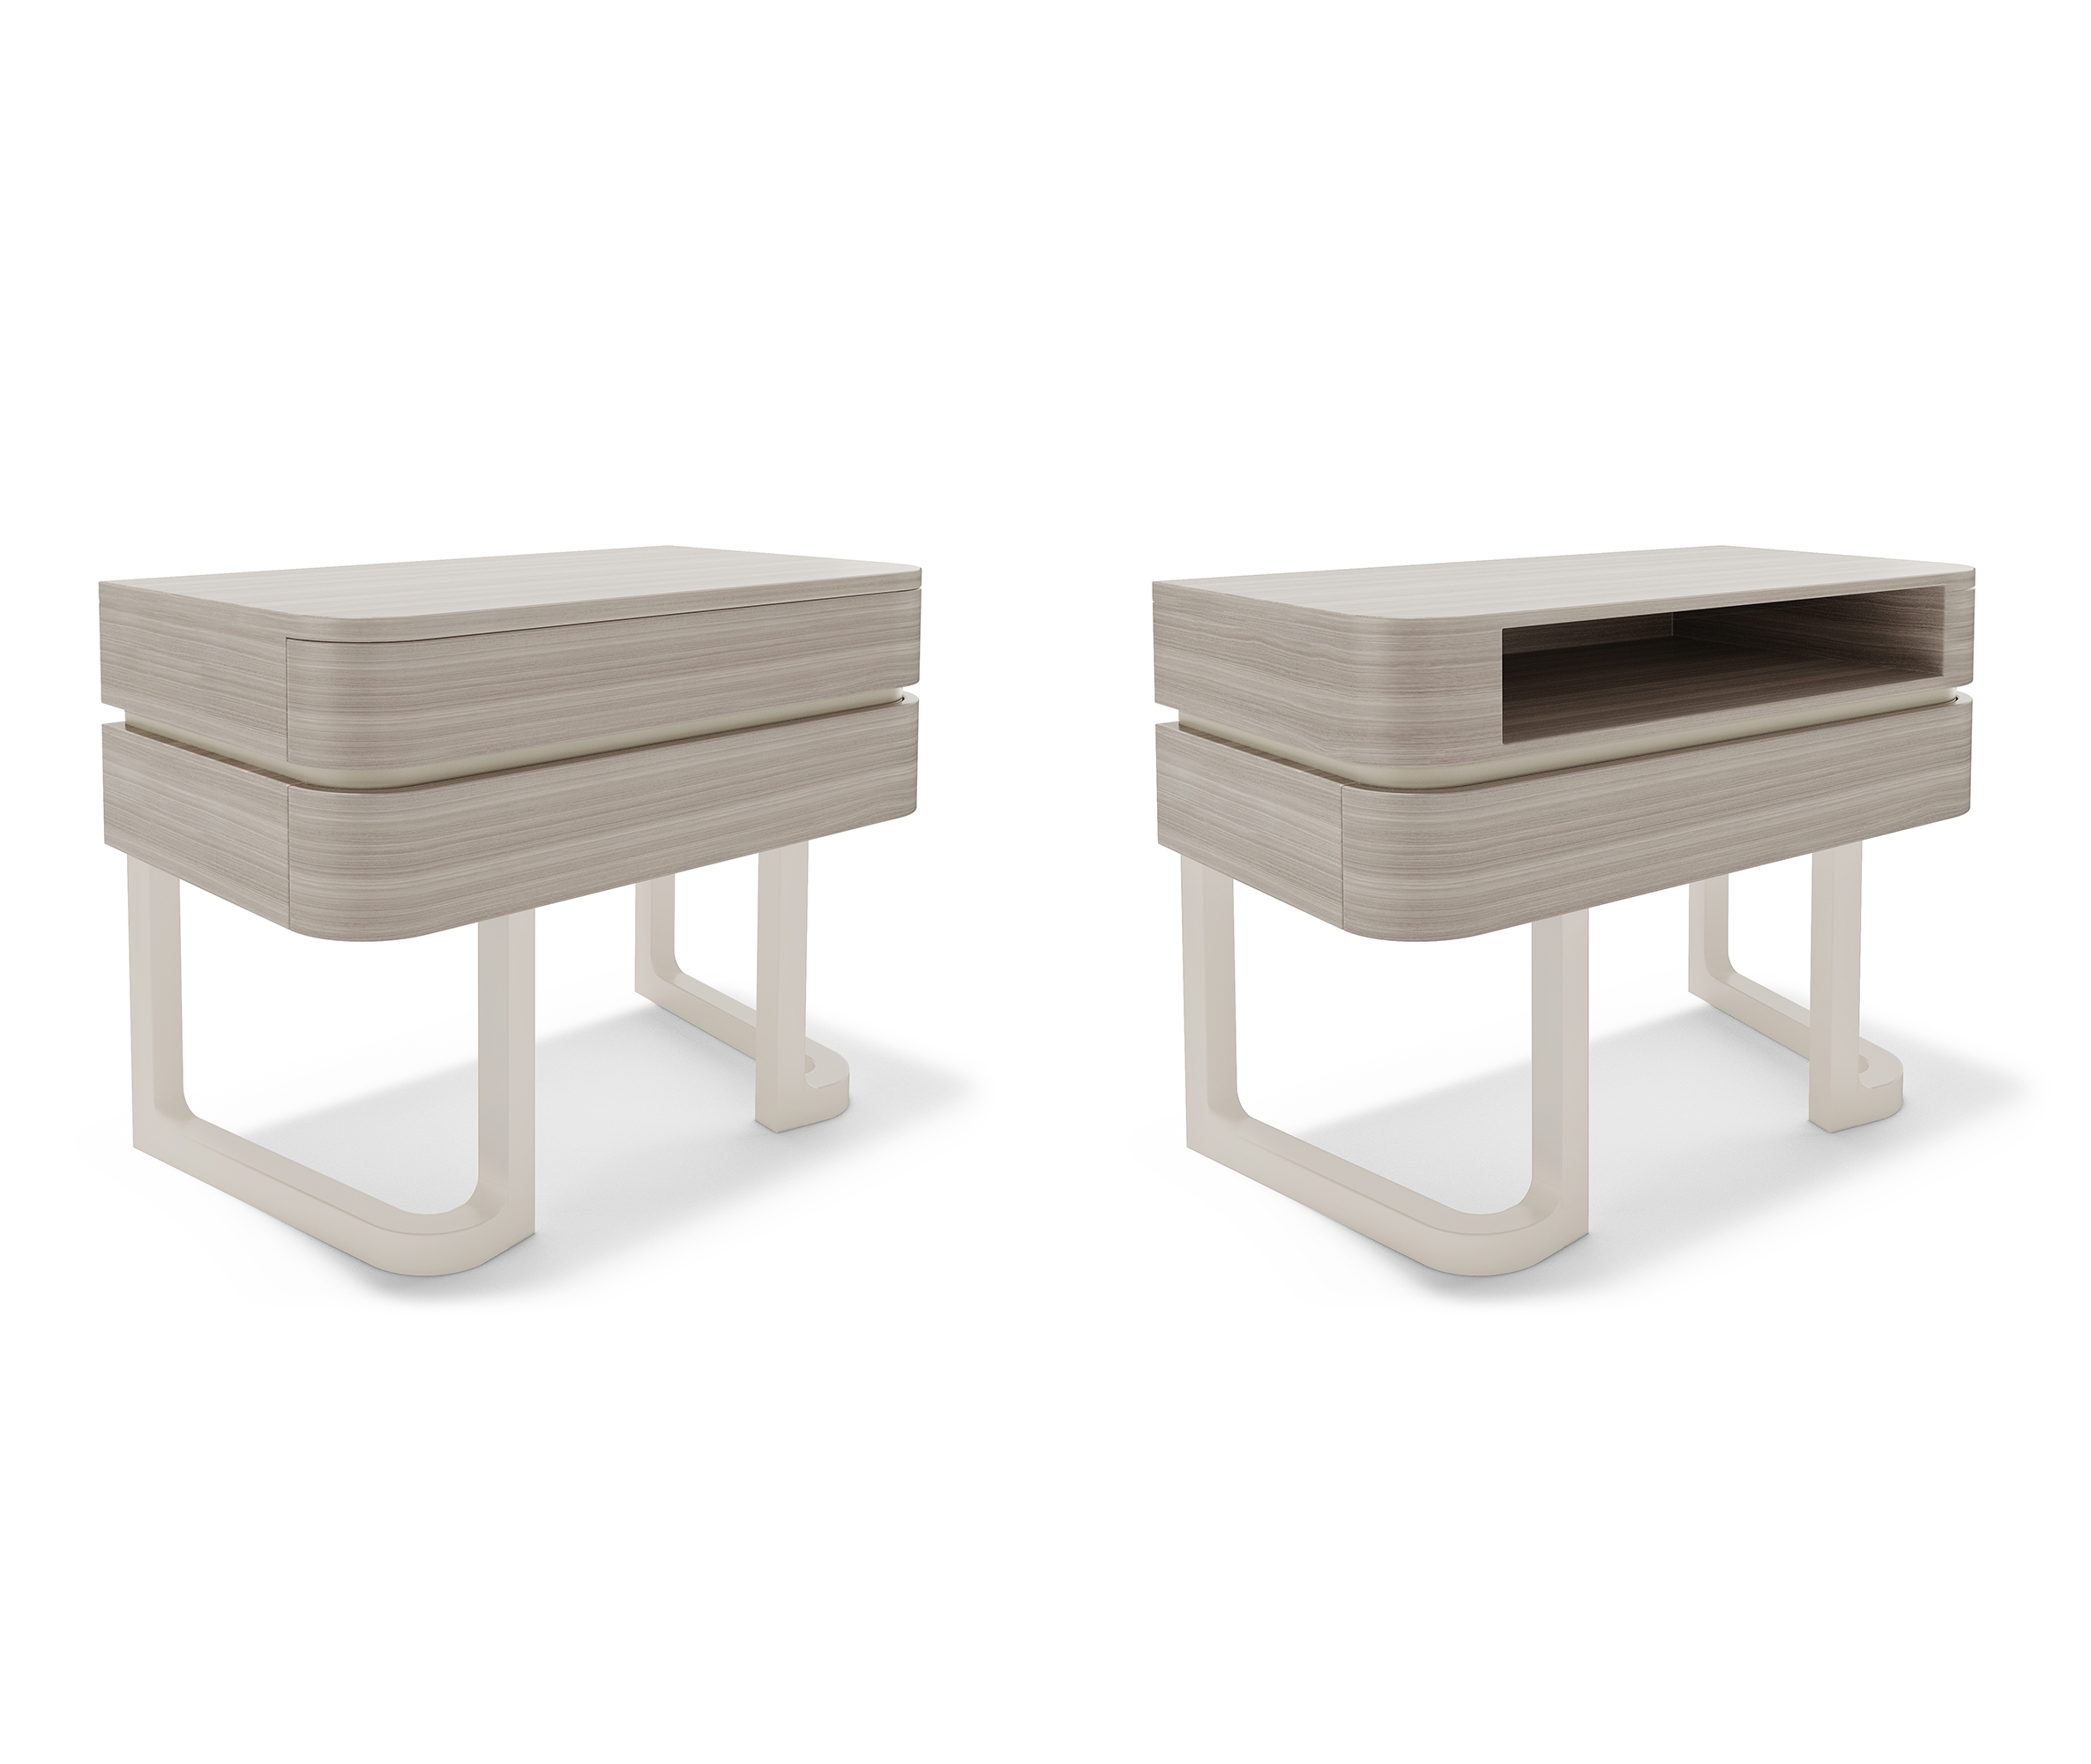 Cliff Young Ltd_Zarra Nightstands_int_products